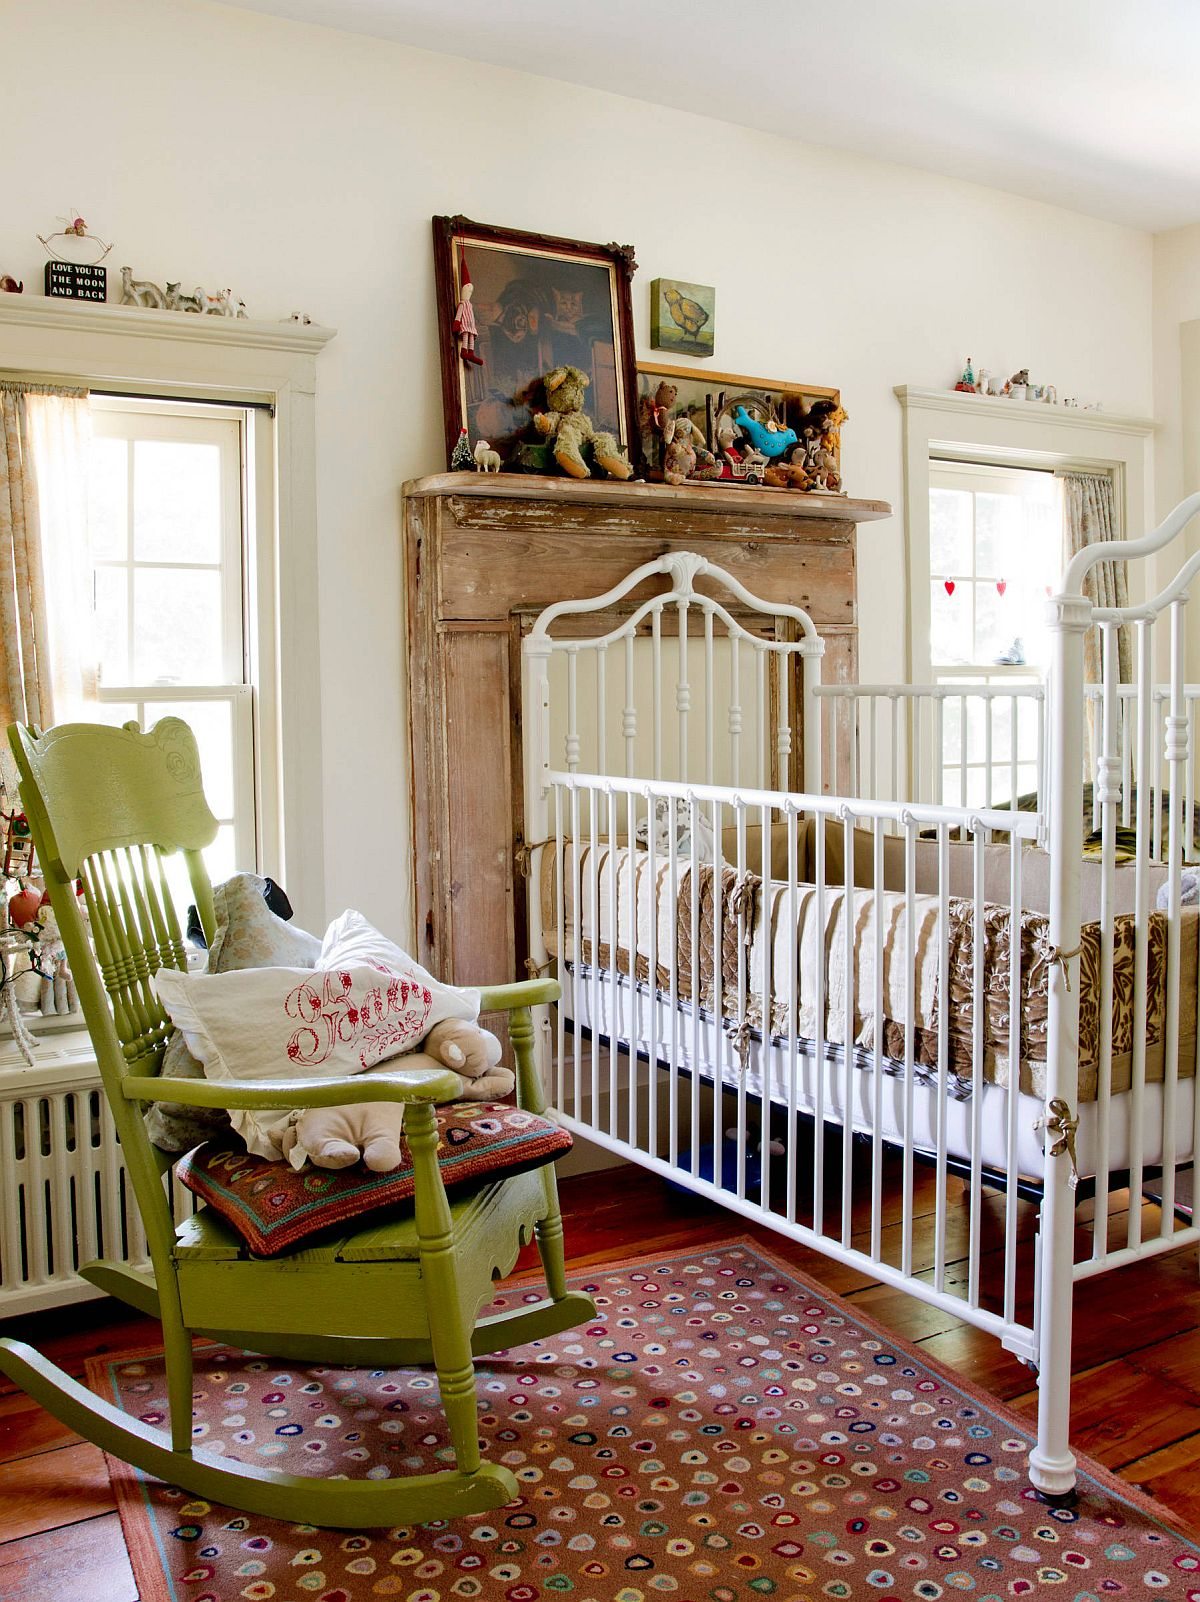 Rocking chair in green for the dreamy eclectic nursrey in white